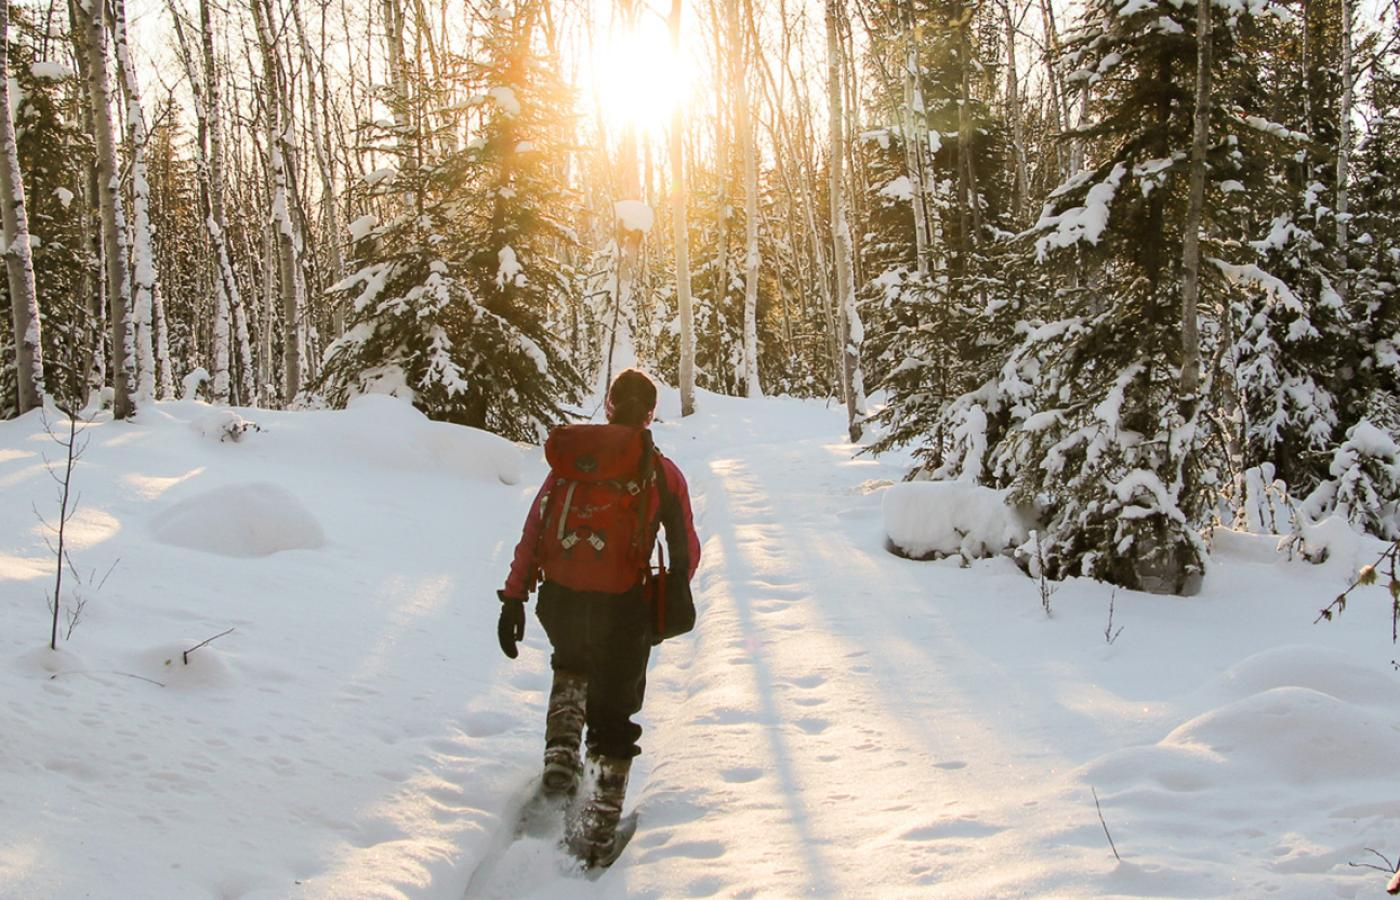 Snowshoeing in the NWT through snowy trees